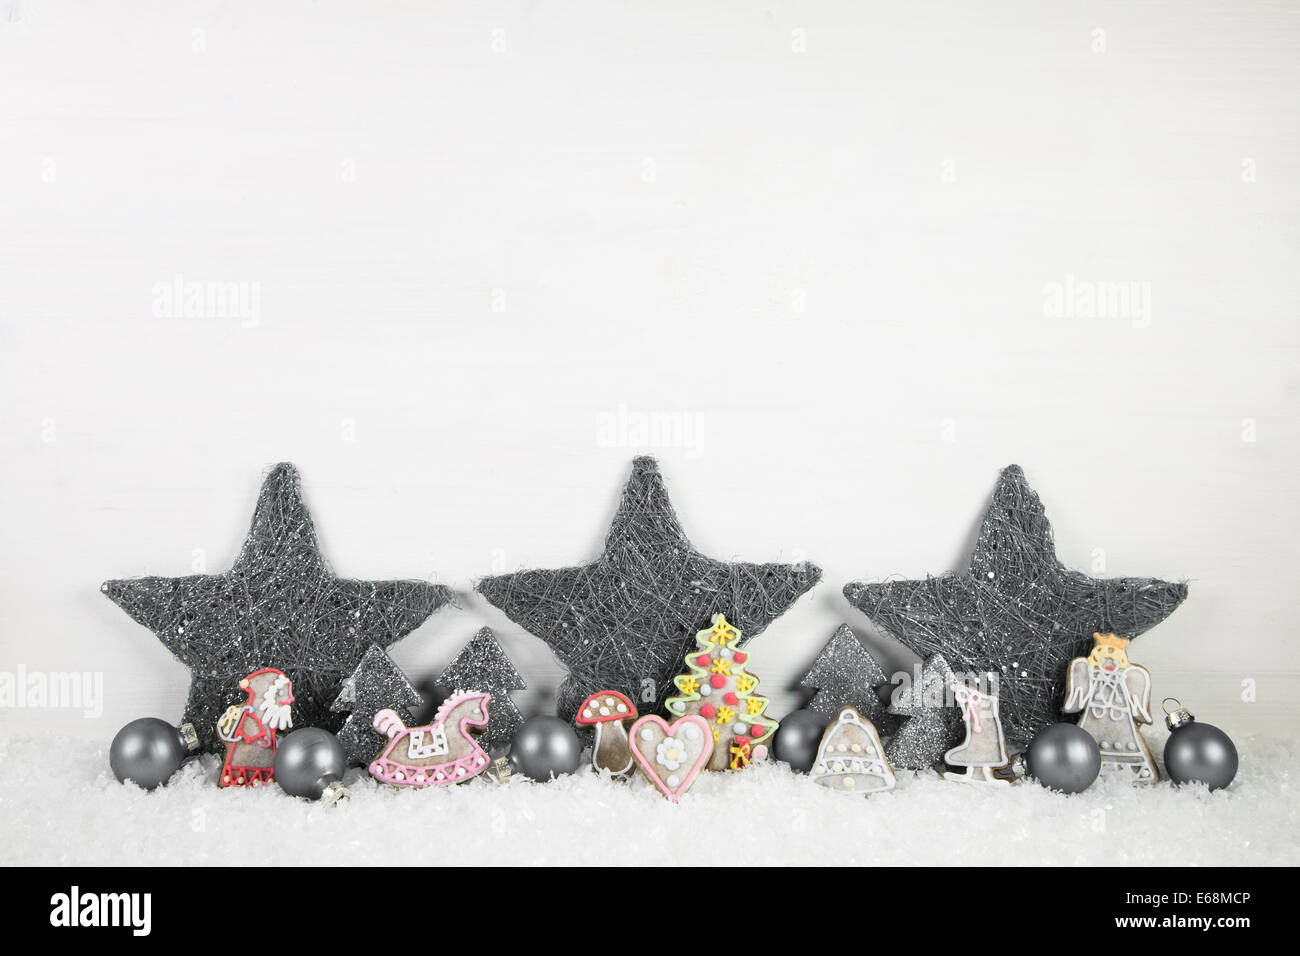 Shabby chic wooden christmas background in white and grey for decorations. - Stock Image